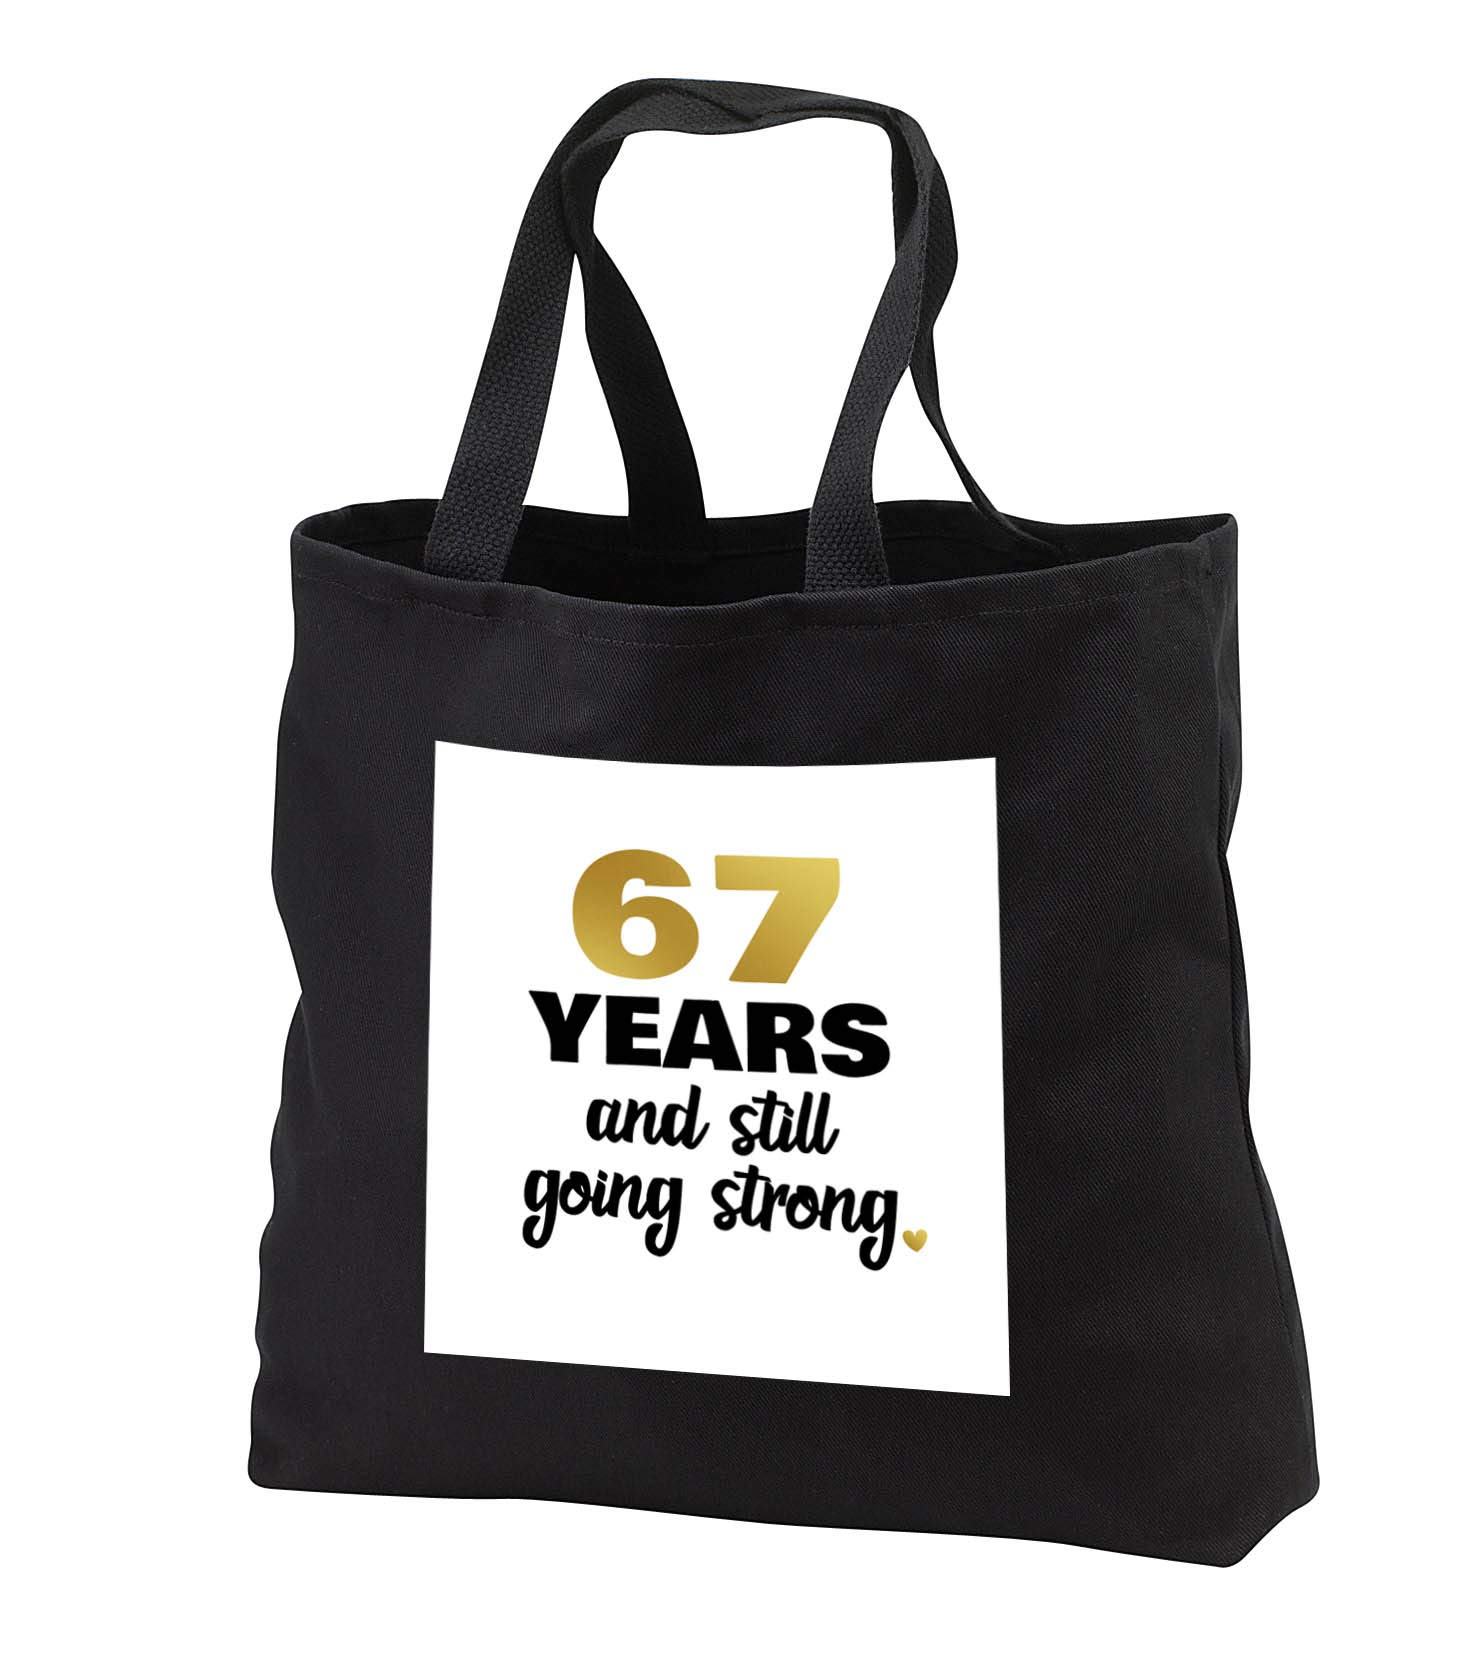 Janna Salak Designs Anniversary - 67 Year Anniversary Still Going Strong 67th Wedding Anniversary Gift - Tote Bags - Black Tote Bag JUMBO 20w x 15h x 5d (tb_289699_3)